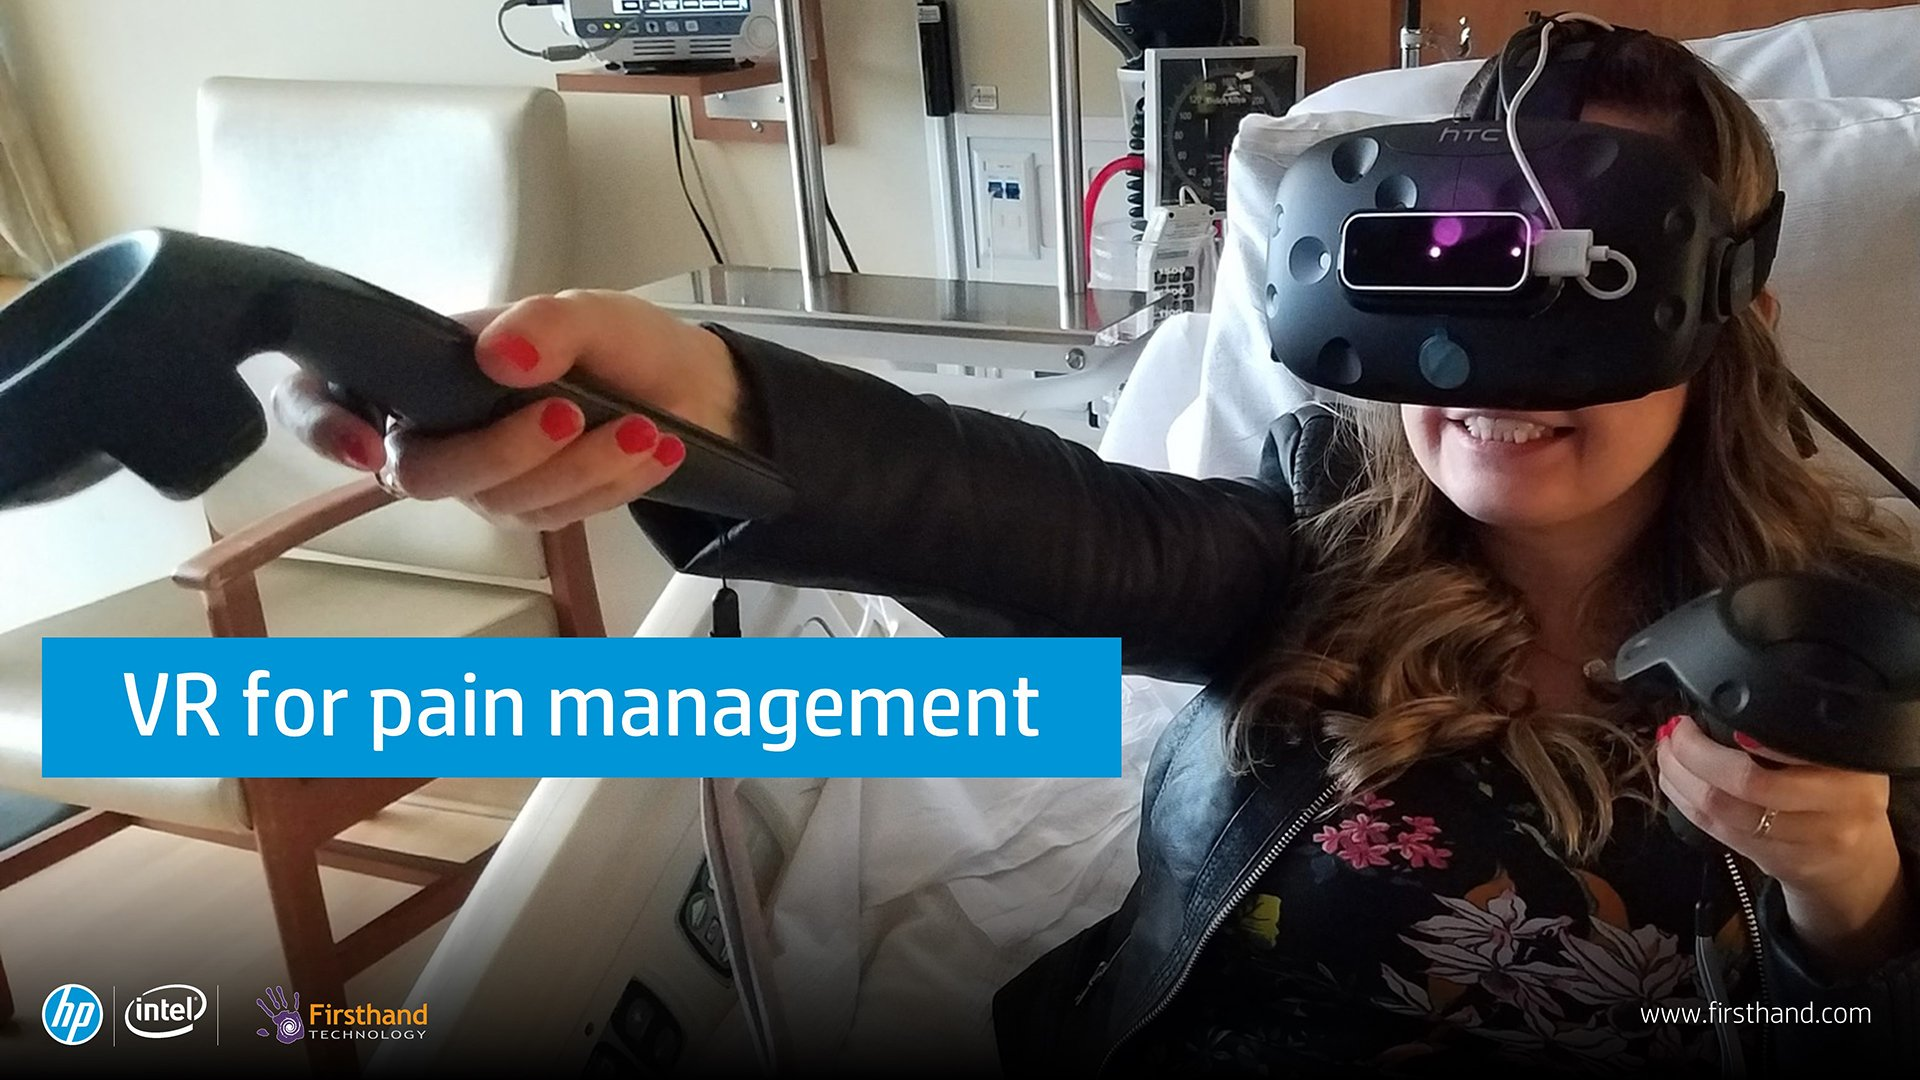 This image from our StudioXperience signage shows Firsthand Technology's use of VR for pain management in a hospital environment.